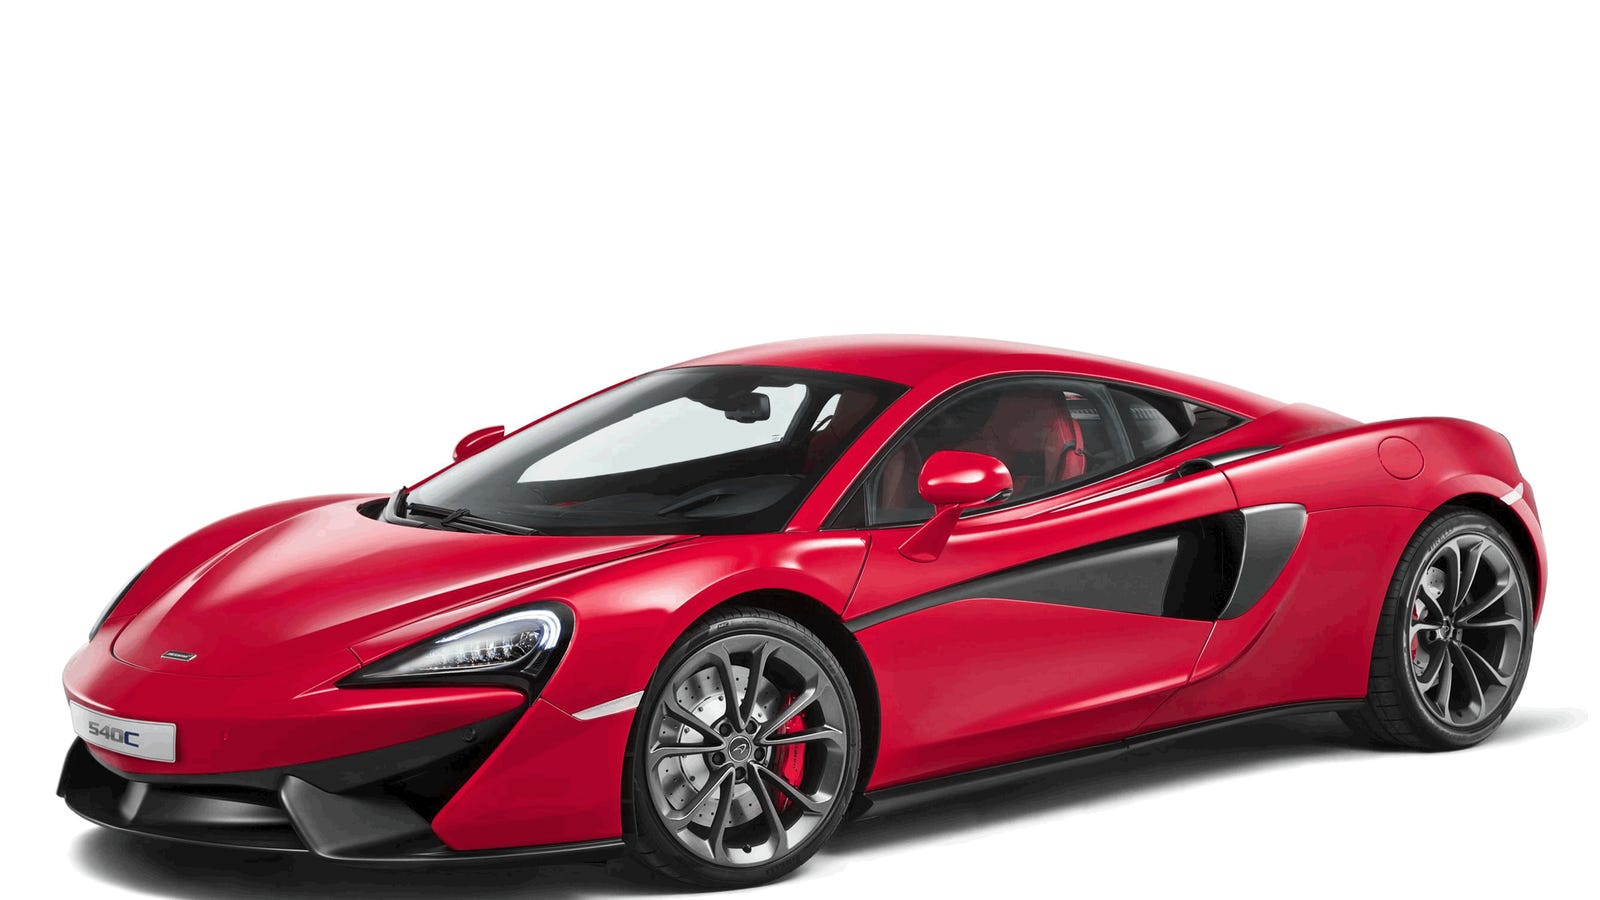 The McLaren 540C Is The Gorgeous 'Inexpensive' McLaren You